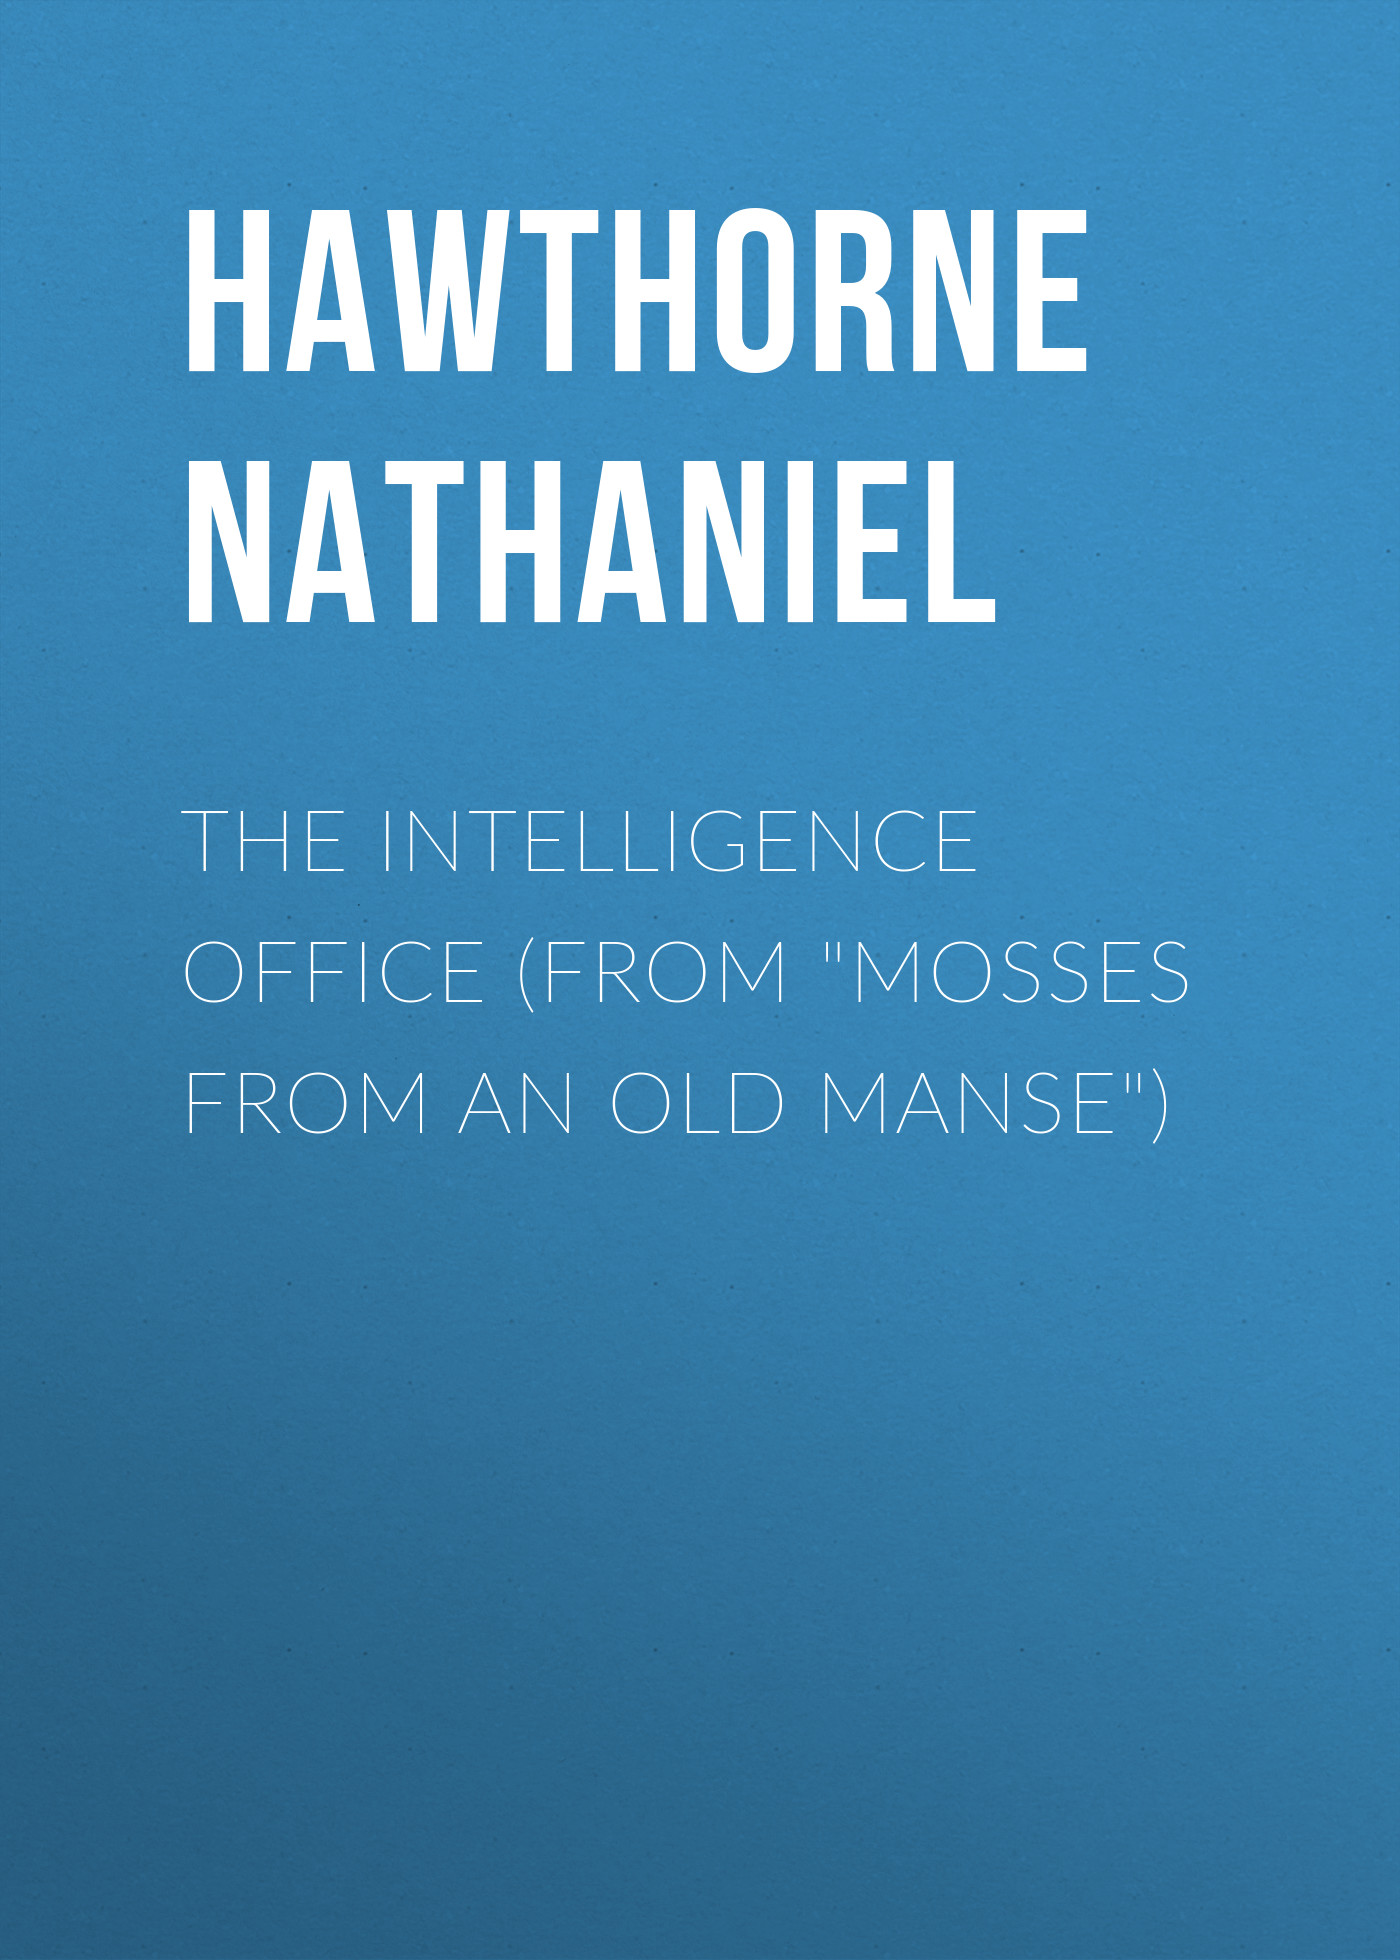 Hawthorne Nathaniel The Intelligence Office (From Mosses from an Old Manse) hawthorne n mosses from an old manse the blithedale romance